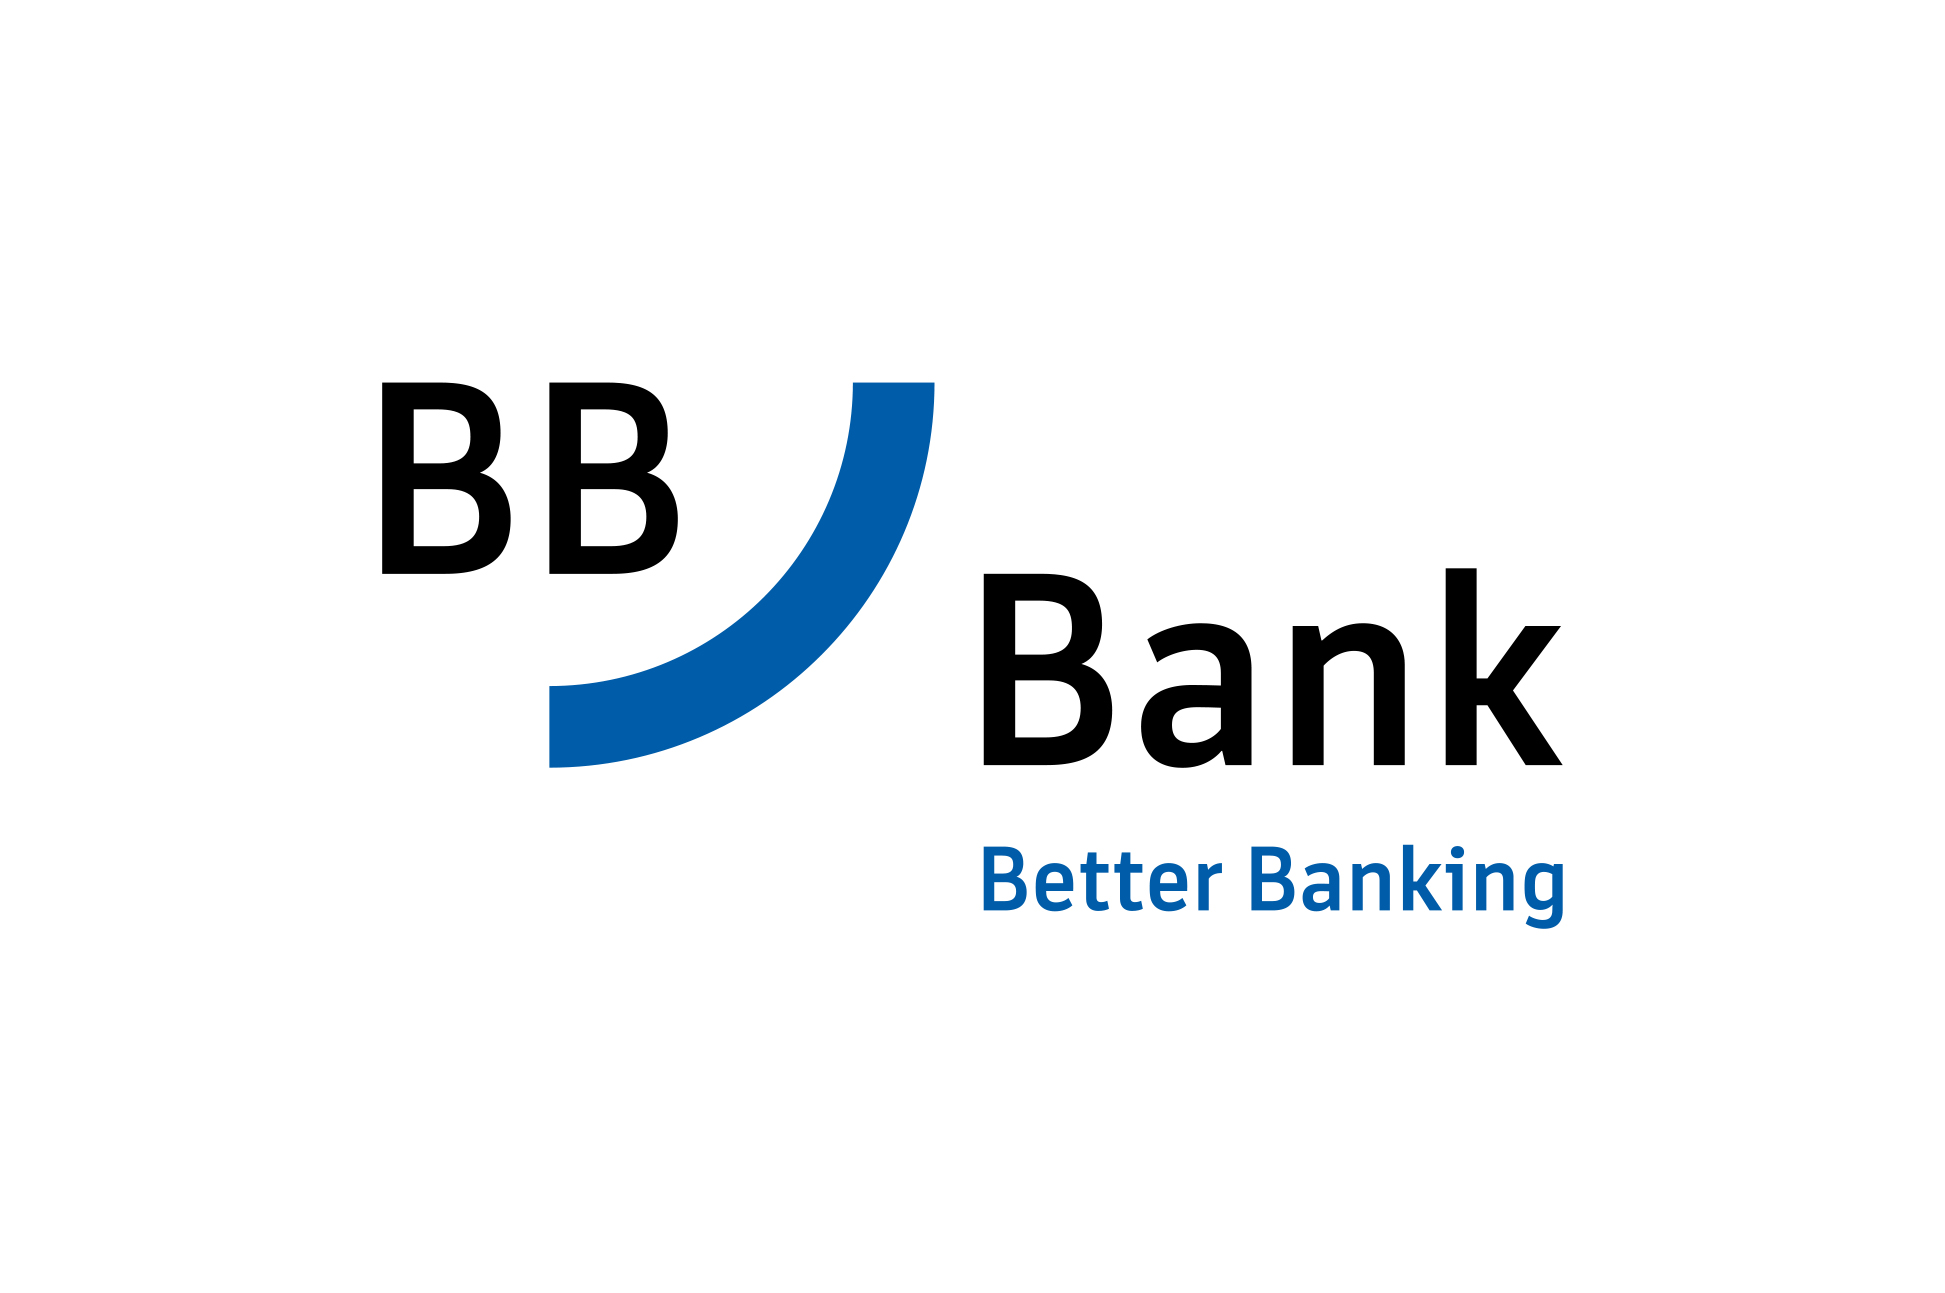 BBBank Better Banking